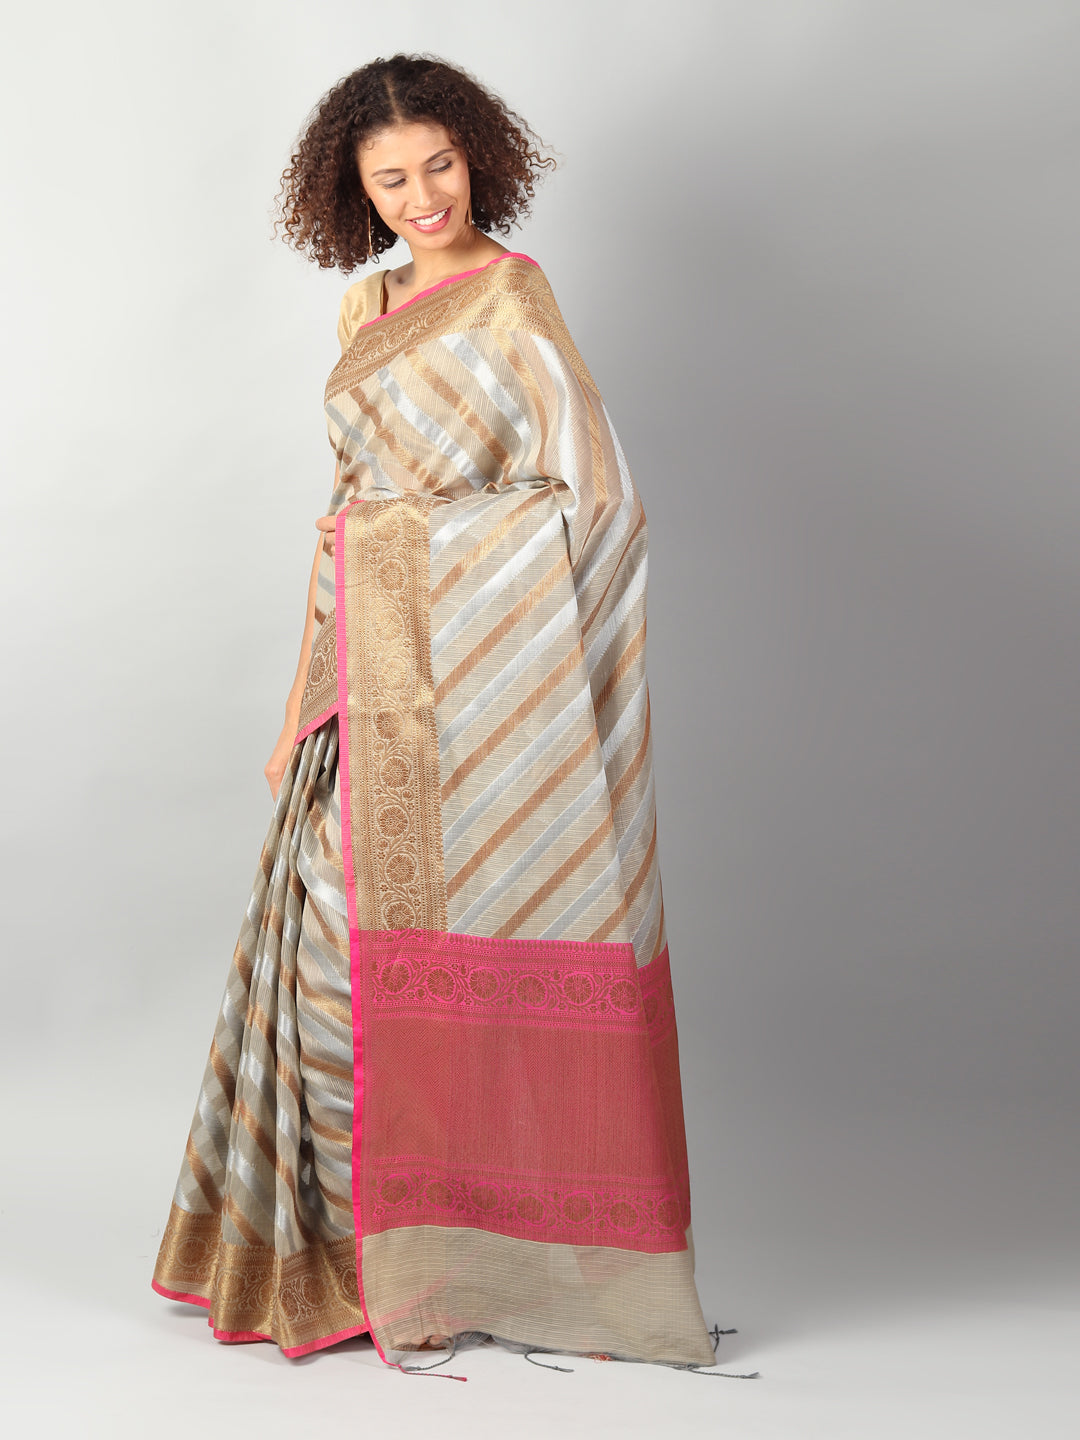 Kota saree with diagonal striped of beige & gold allover and zari border